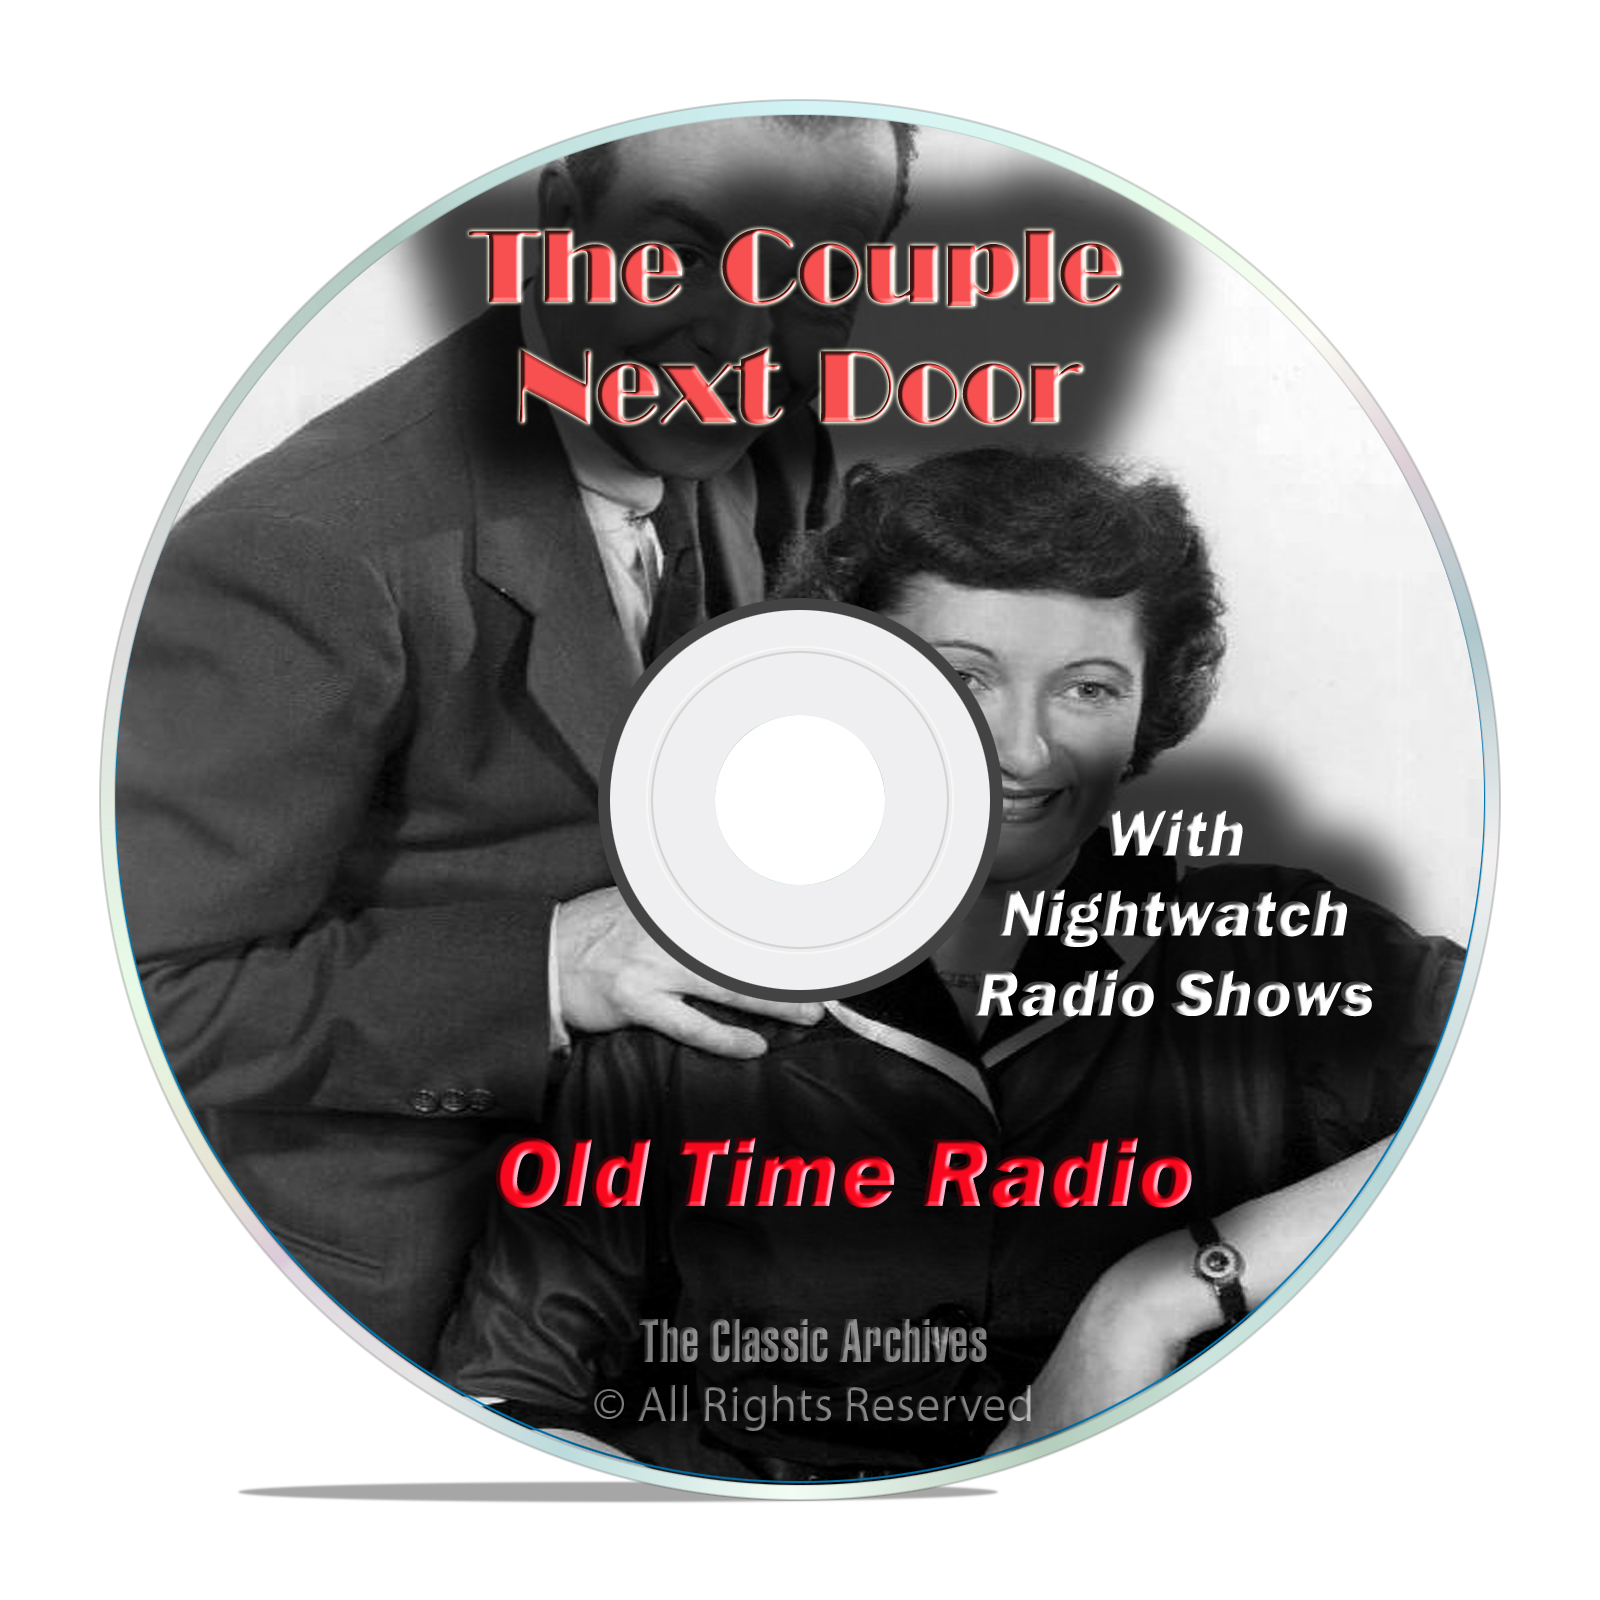 The Couple Next Door, 1,022 Classic Old Time Radio Drama Shows, OTR mp3 DVD